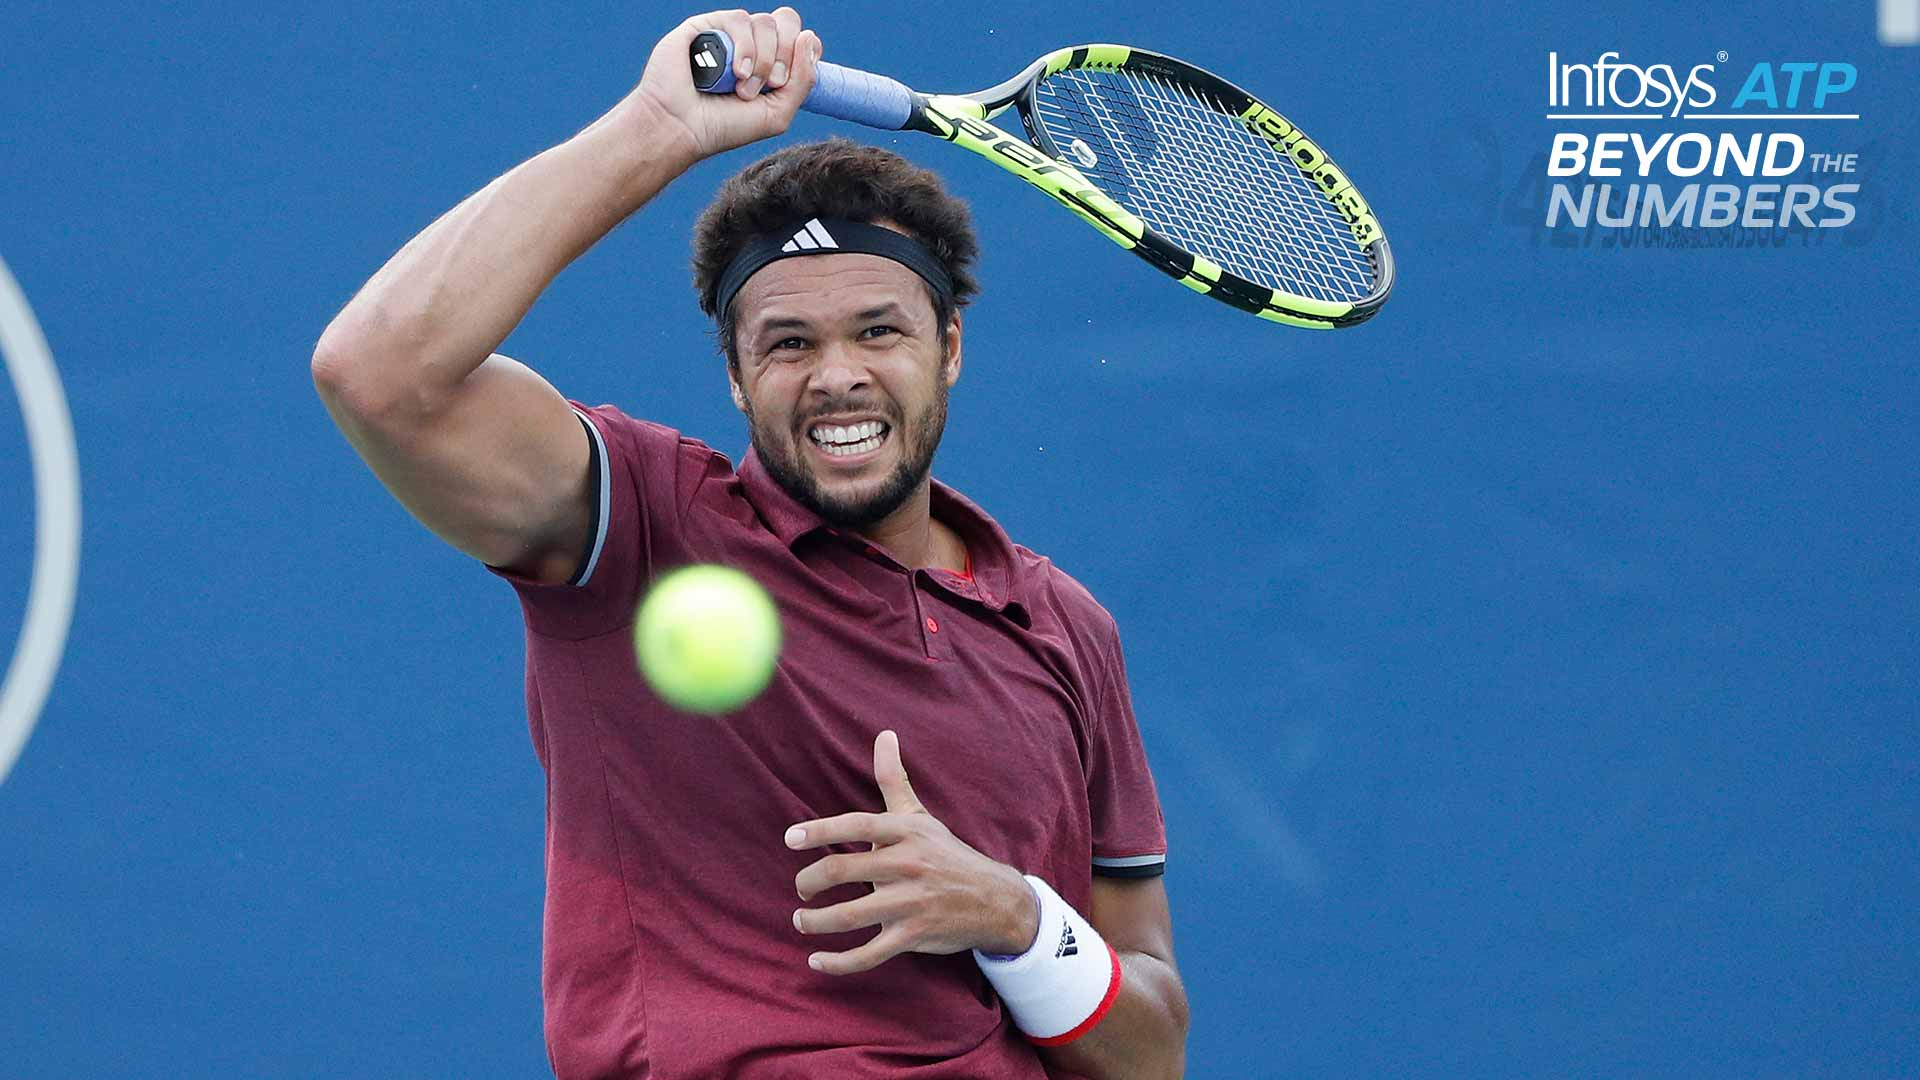 Tsonga is 18 per cent more likely to break serve if he wins the first point of the game.